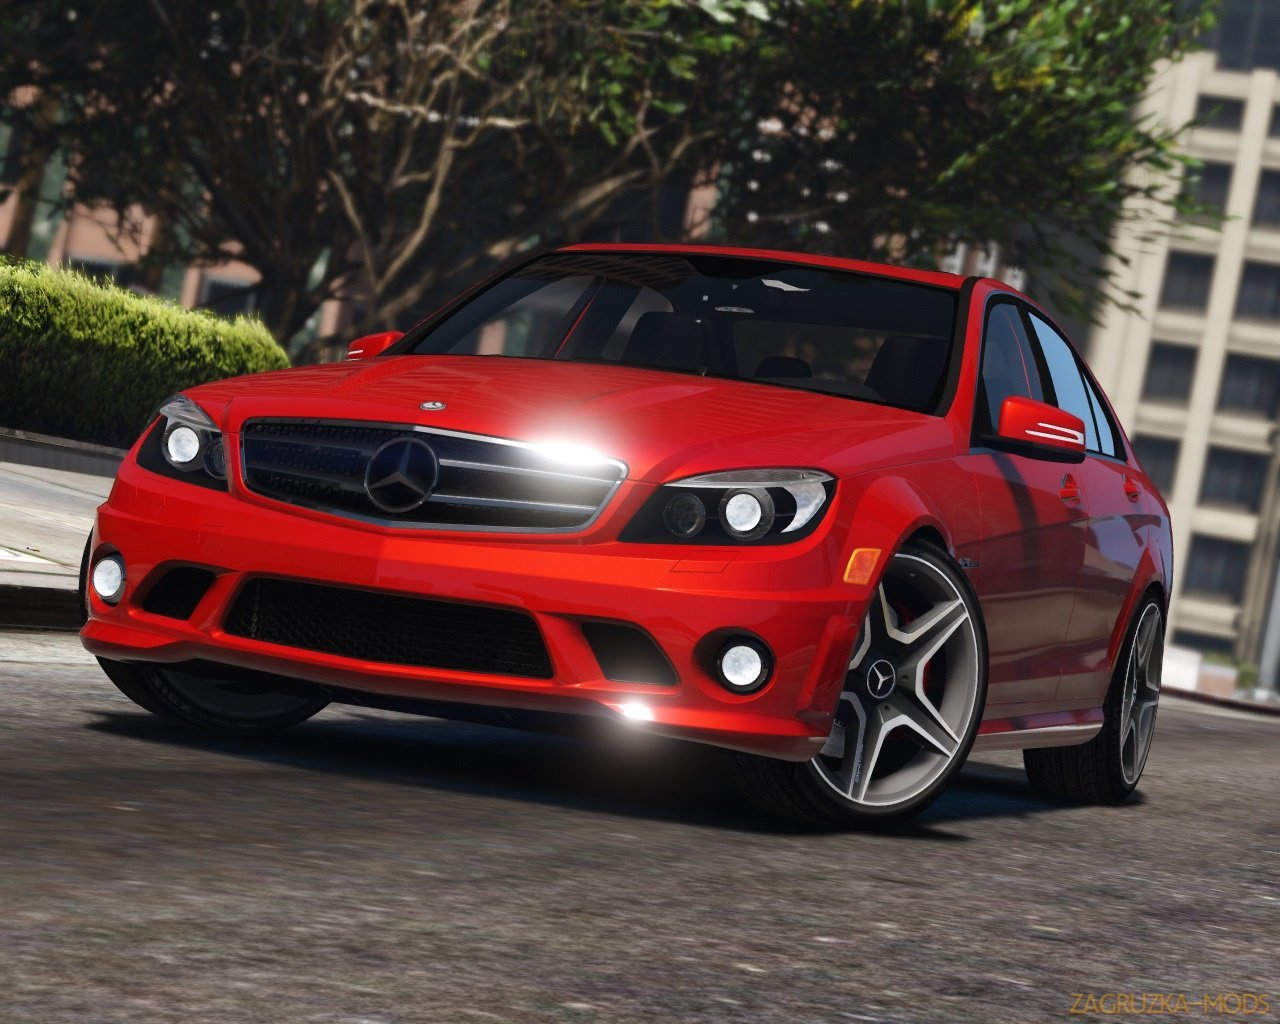 Mercedes-Benz C63 AMG W204 2011 + Tuning v1 4 for GTA 5